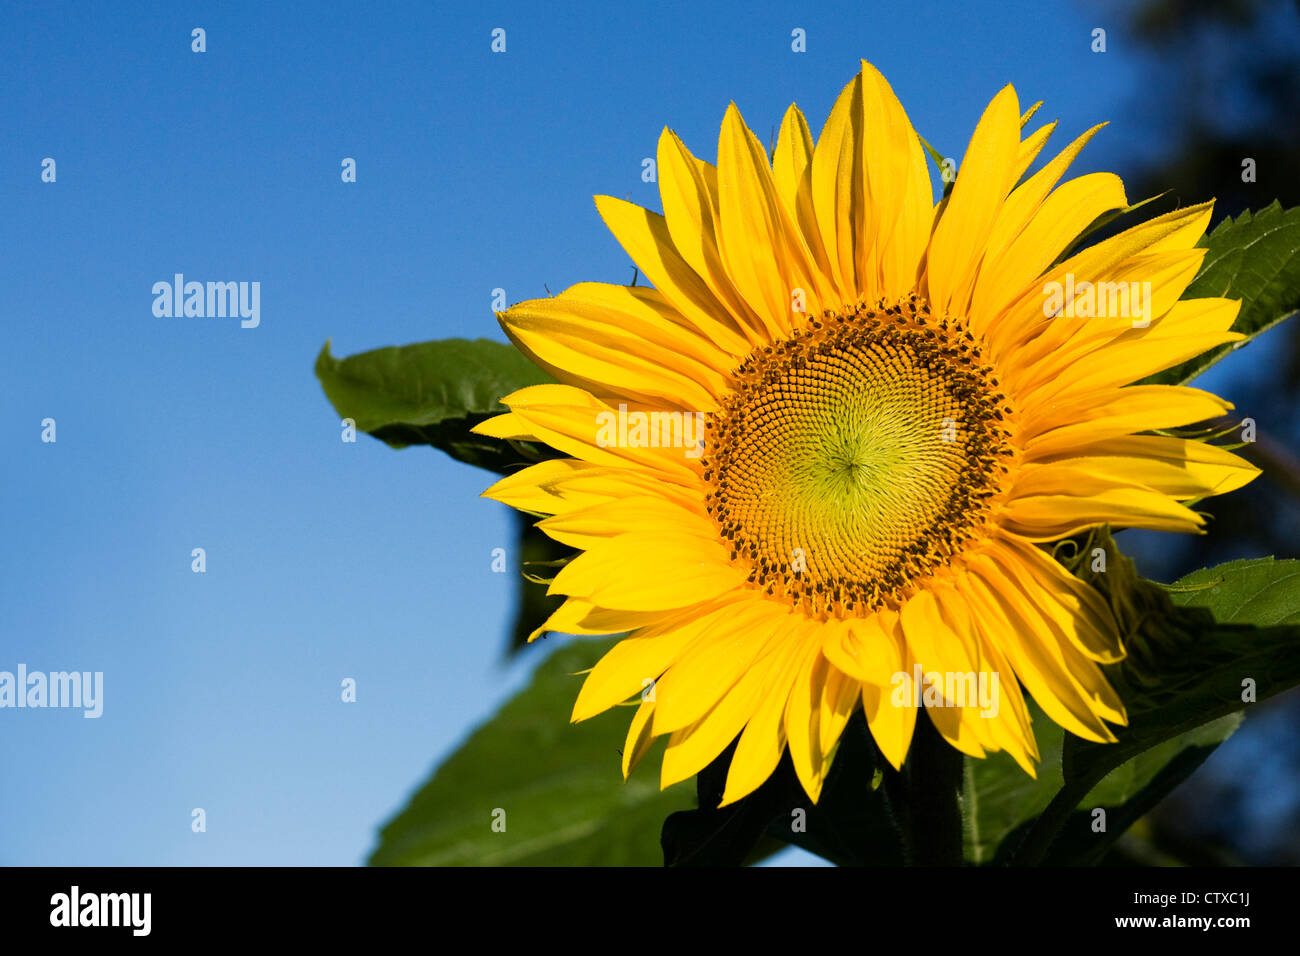 Helianthus annuus. A single sunflower against a blue sky. - Stock Image